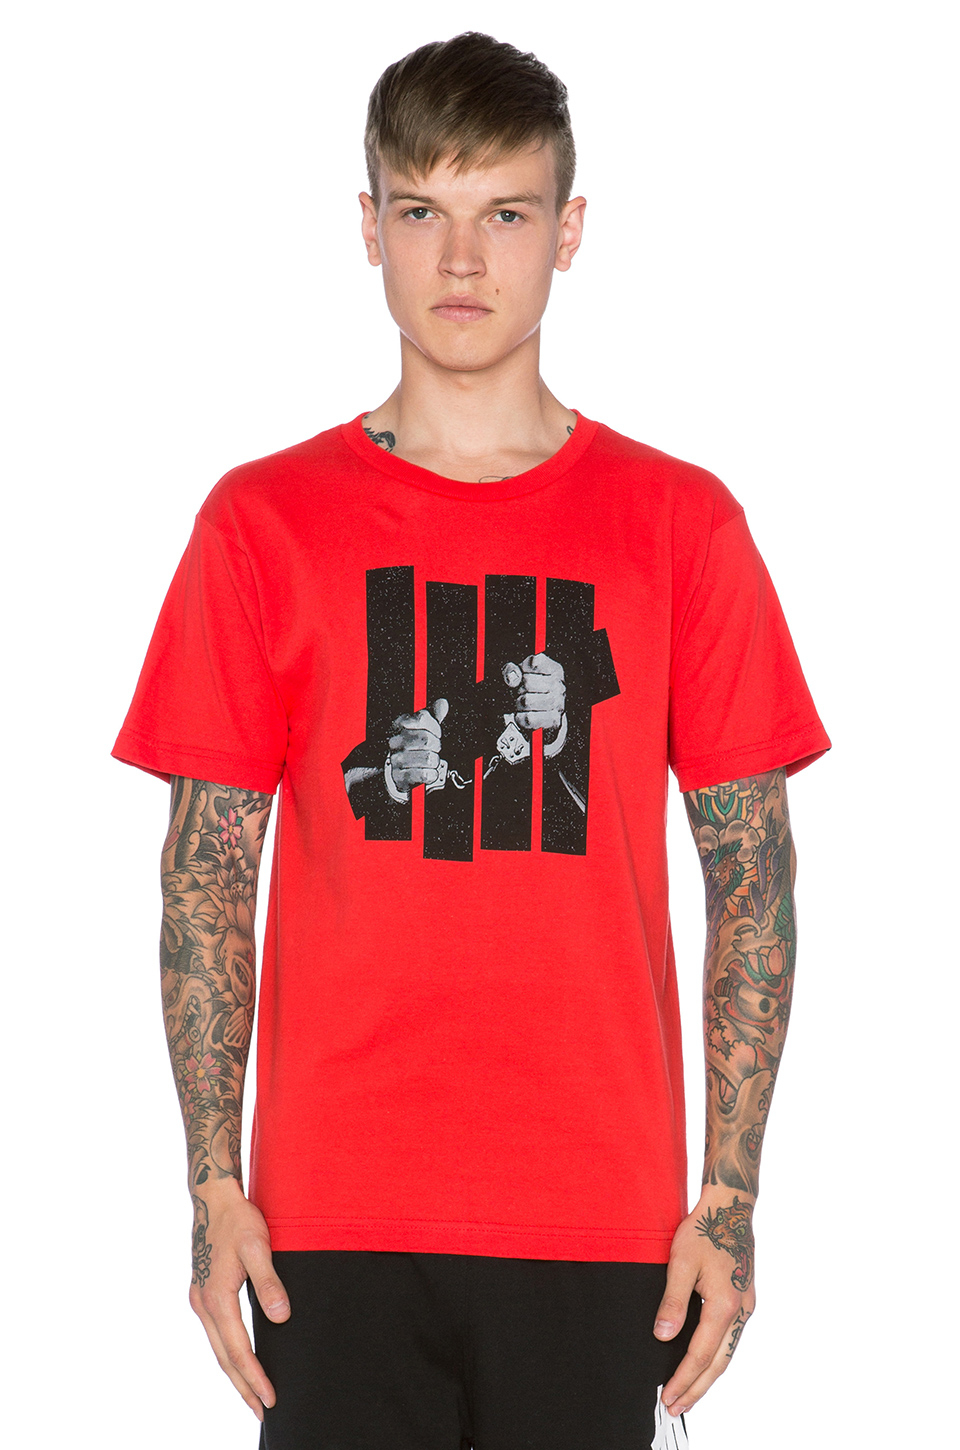 Undefeated Captive Tee in Red for Men